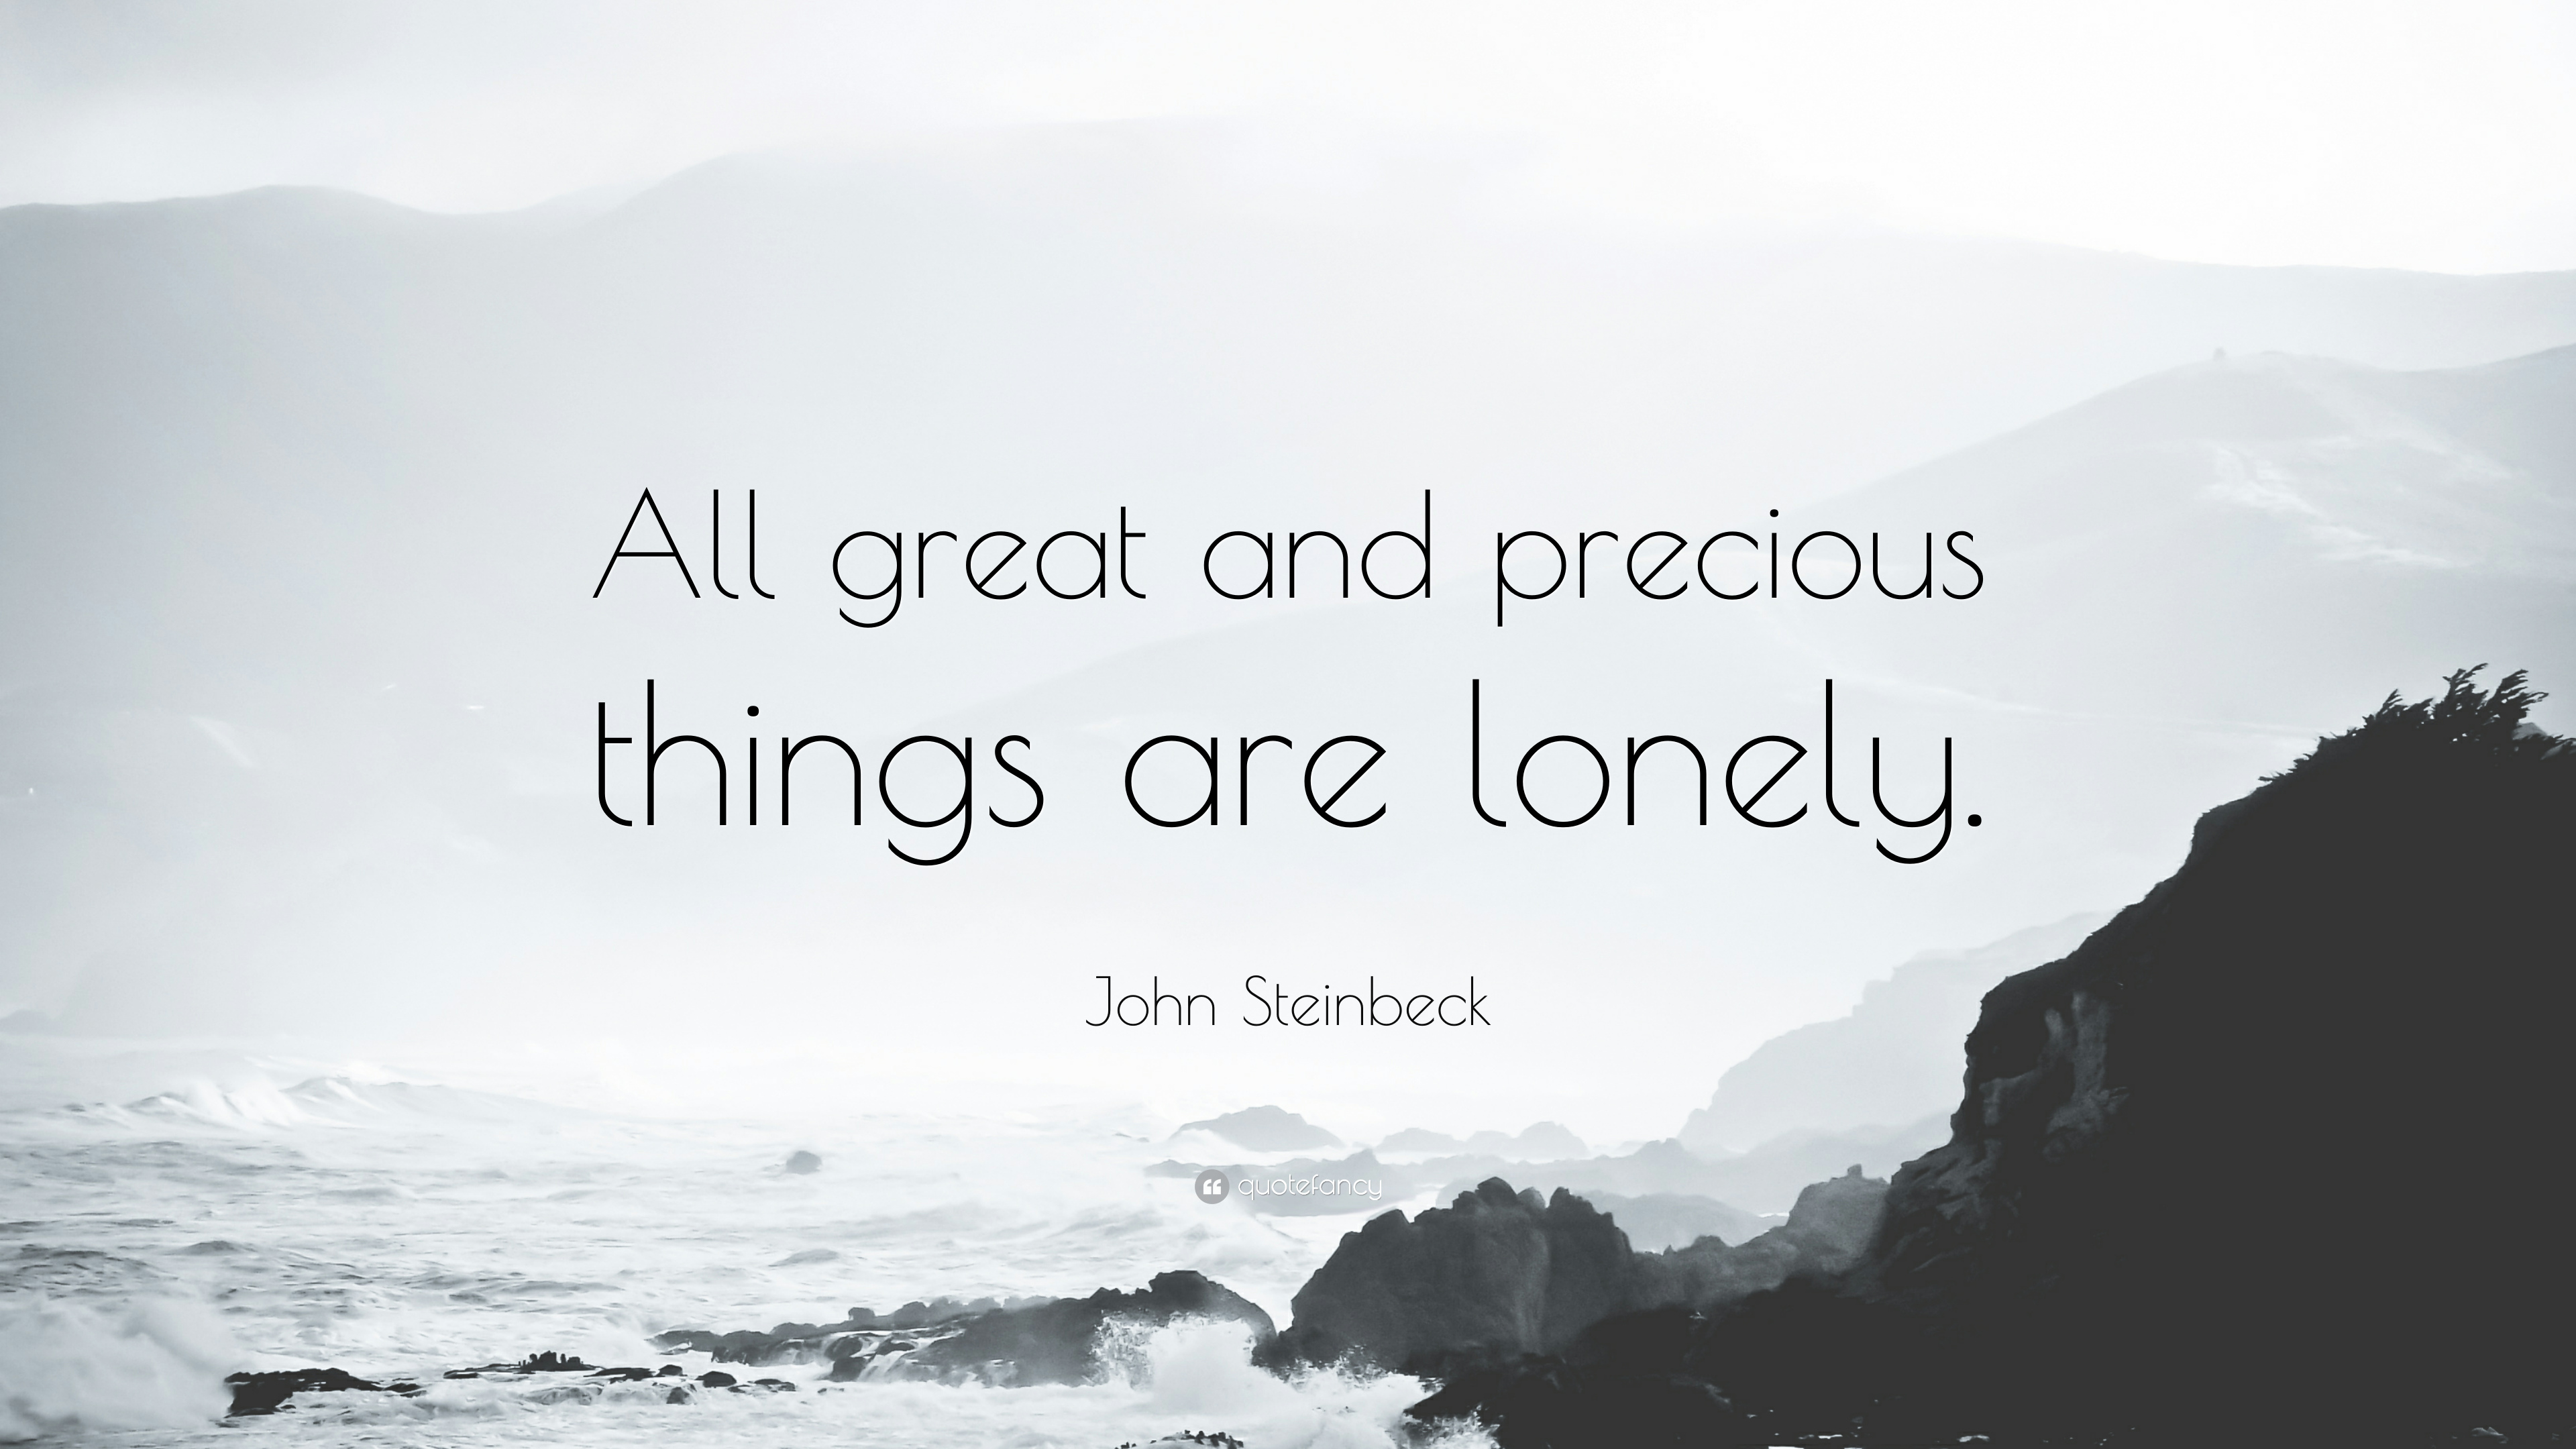 Loneliness Quotes (40 wallpapers) - Quotefancy